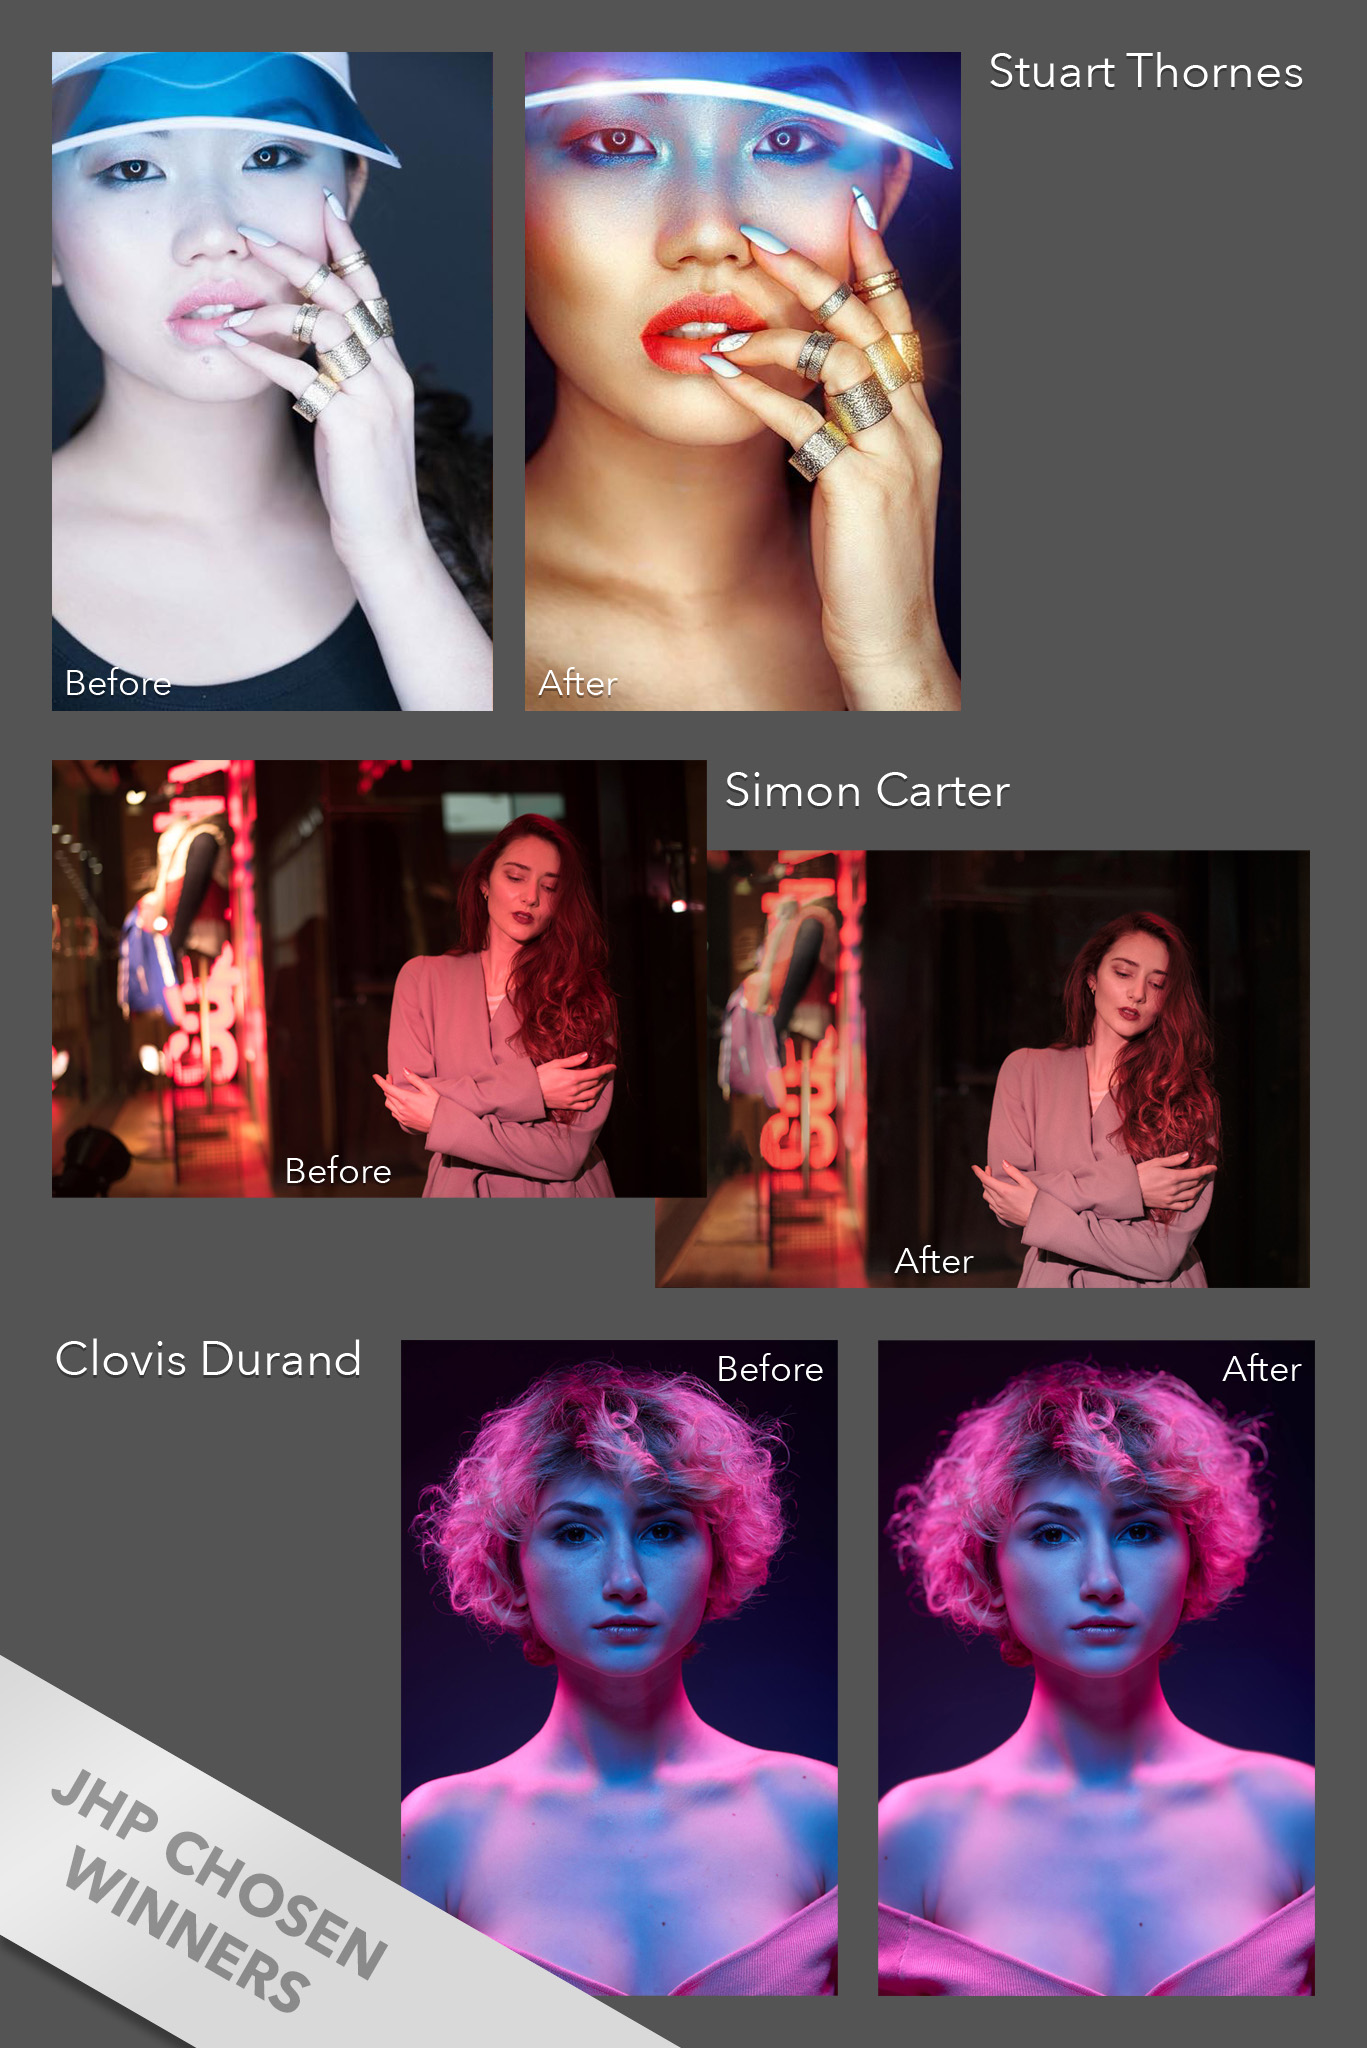 With the winners of the competition announced, all that was left for me to do, was to retouch the wining shots myself.